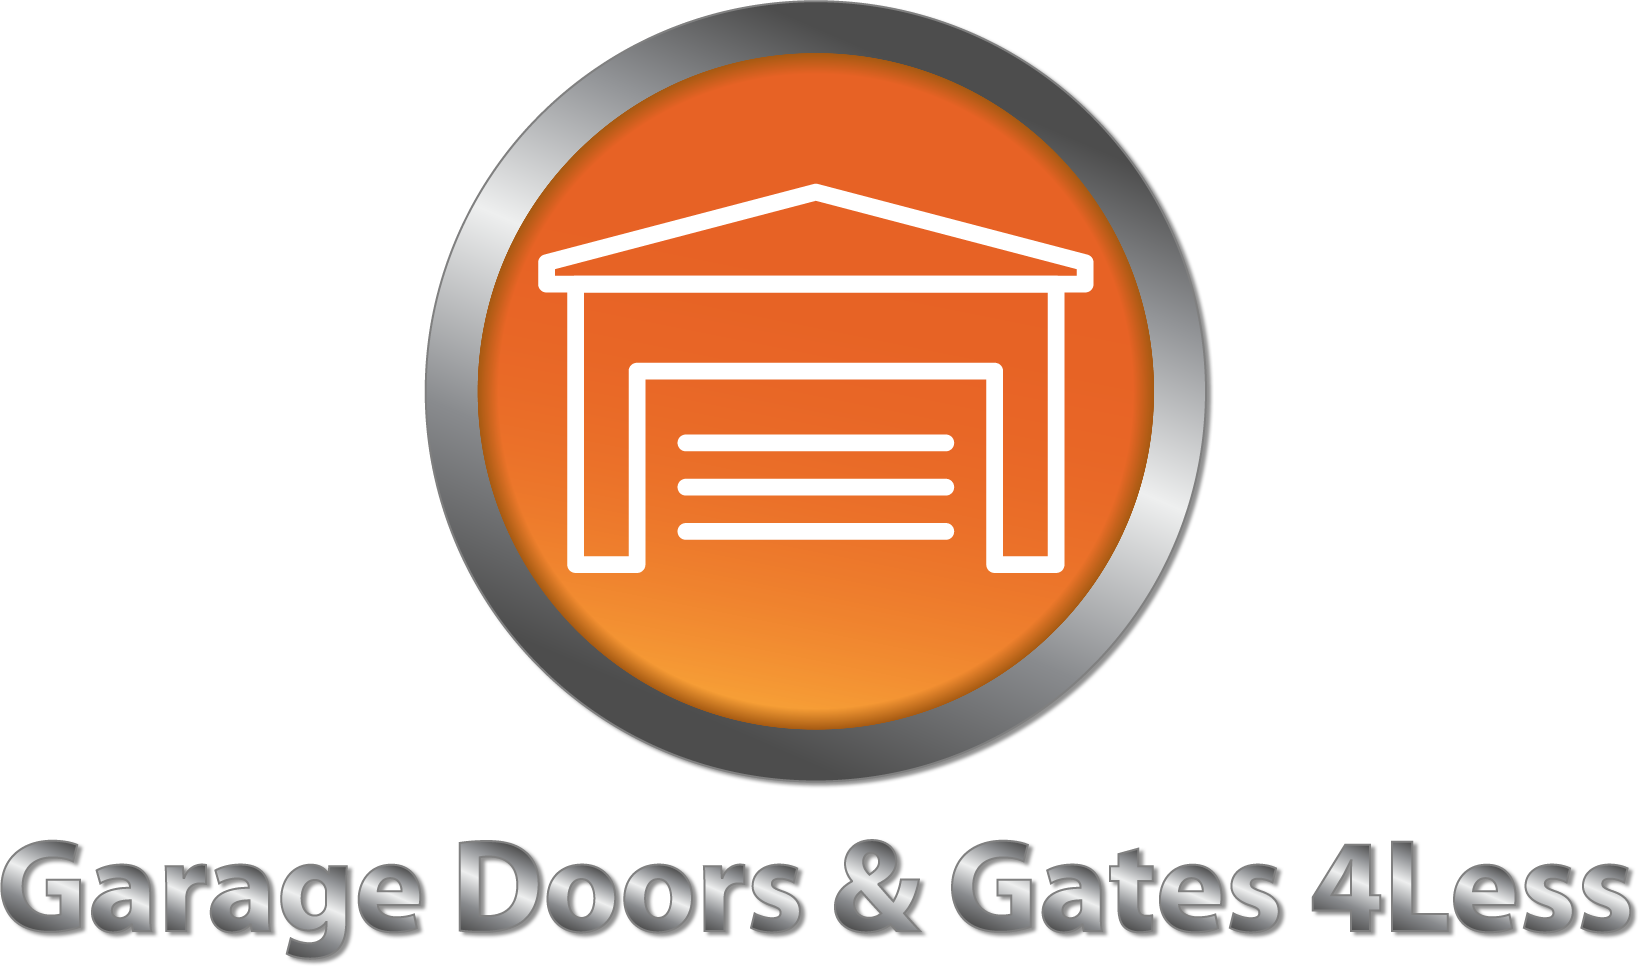 Garage door 4less